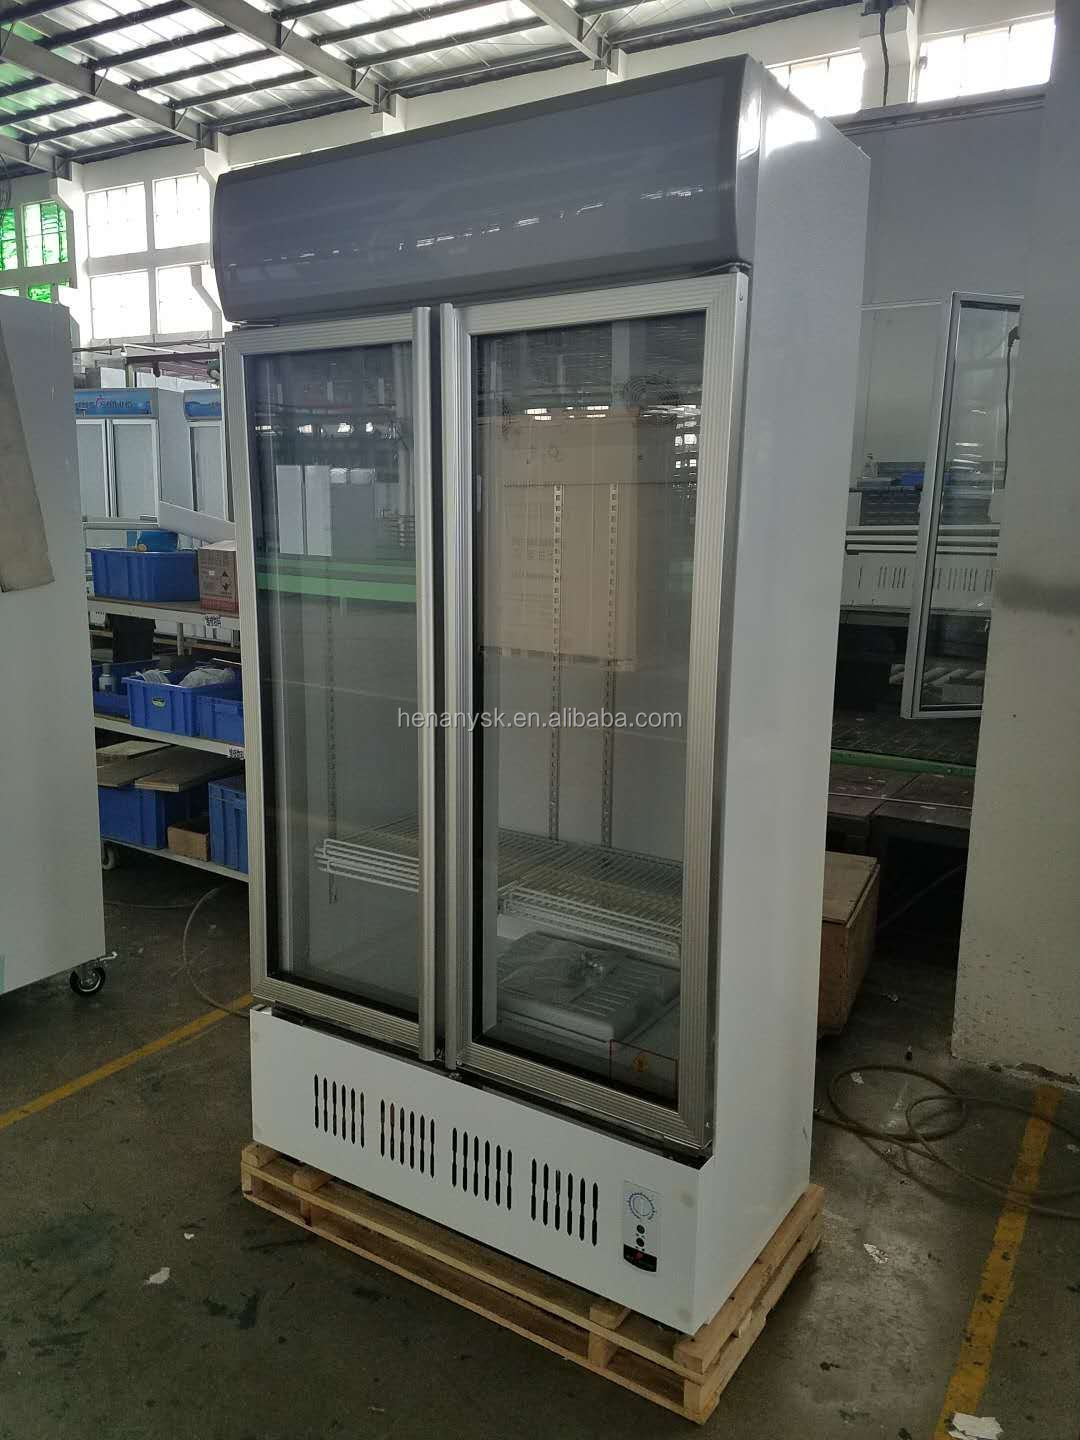 Commercial Glass Fridge 2 Glass Door Vertical Chiller Refrigerator Display Drink Showcase